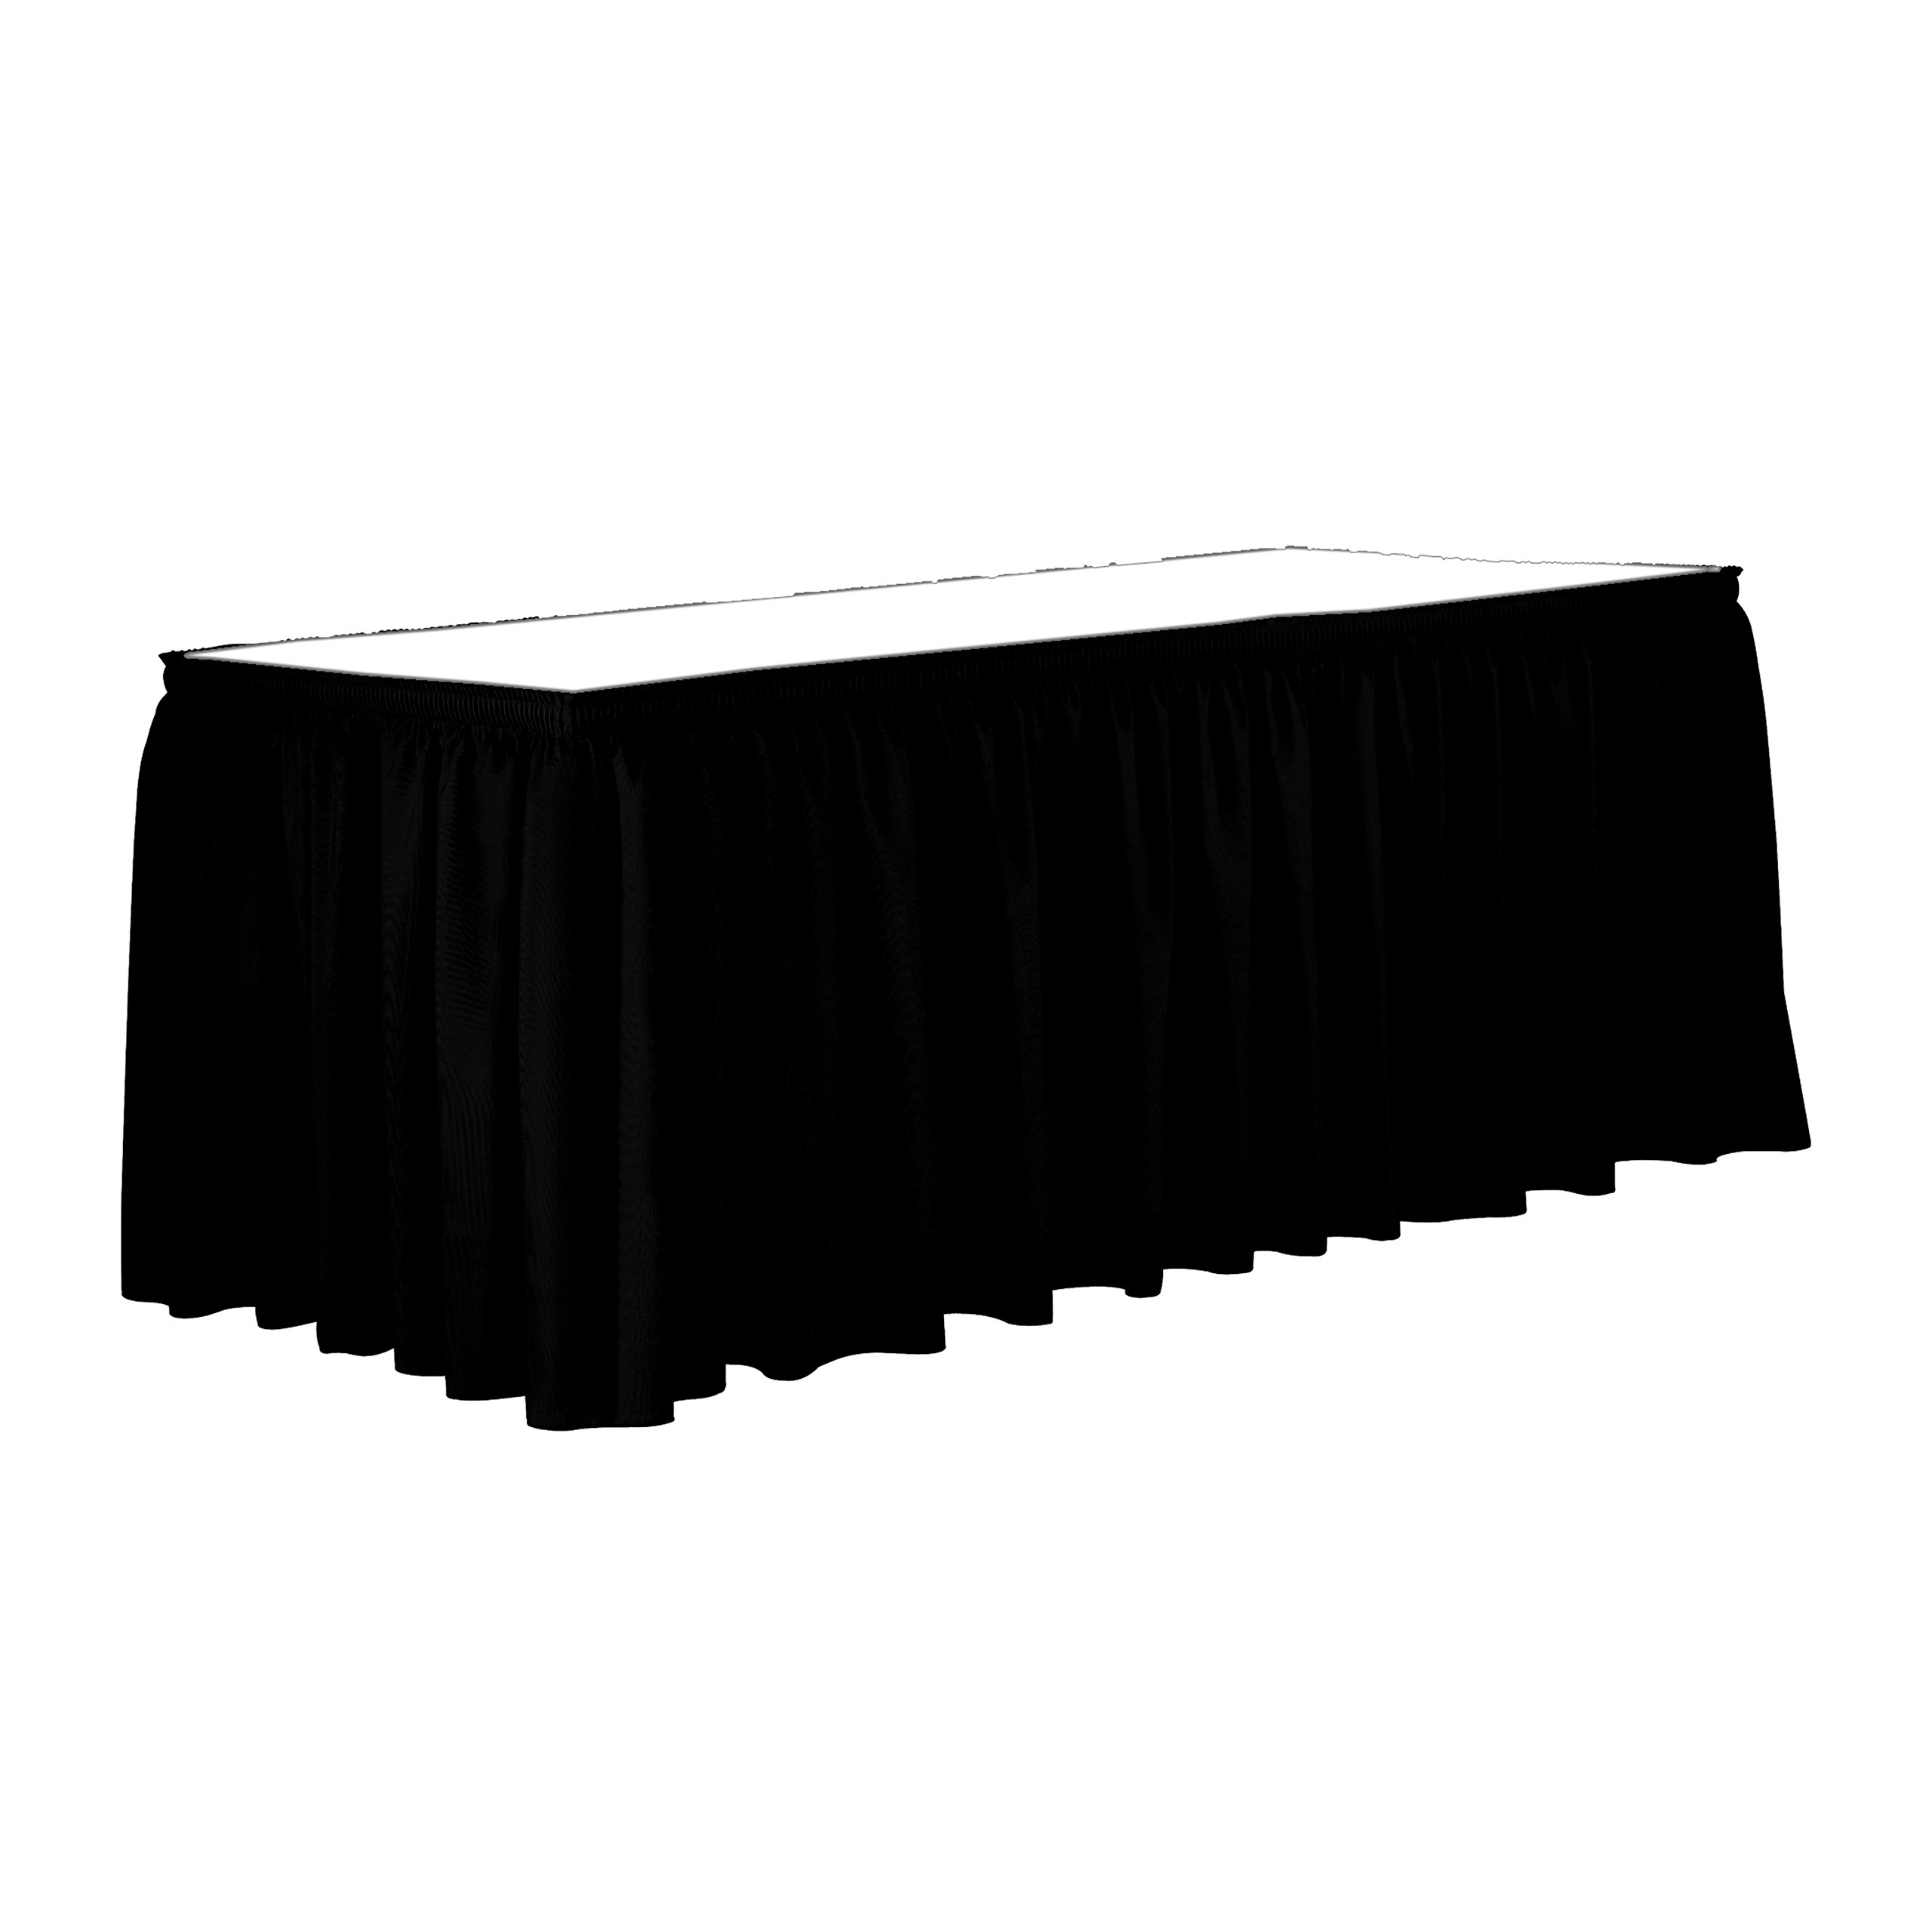 Ultimate Textile 7 ft. Shirred Pleat Polyester Table Skirt - 36'' Counter Serving Height, Black by Ultimate Textile